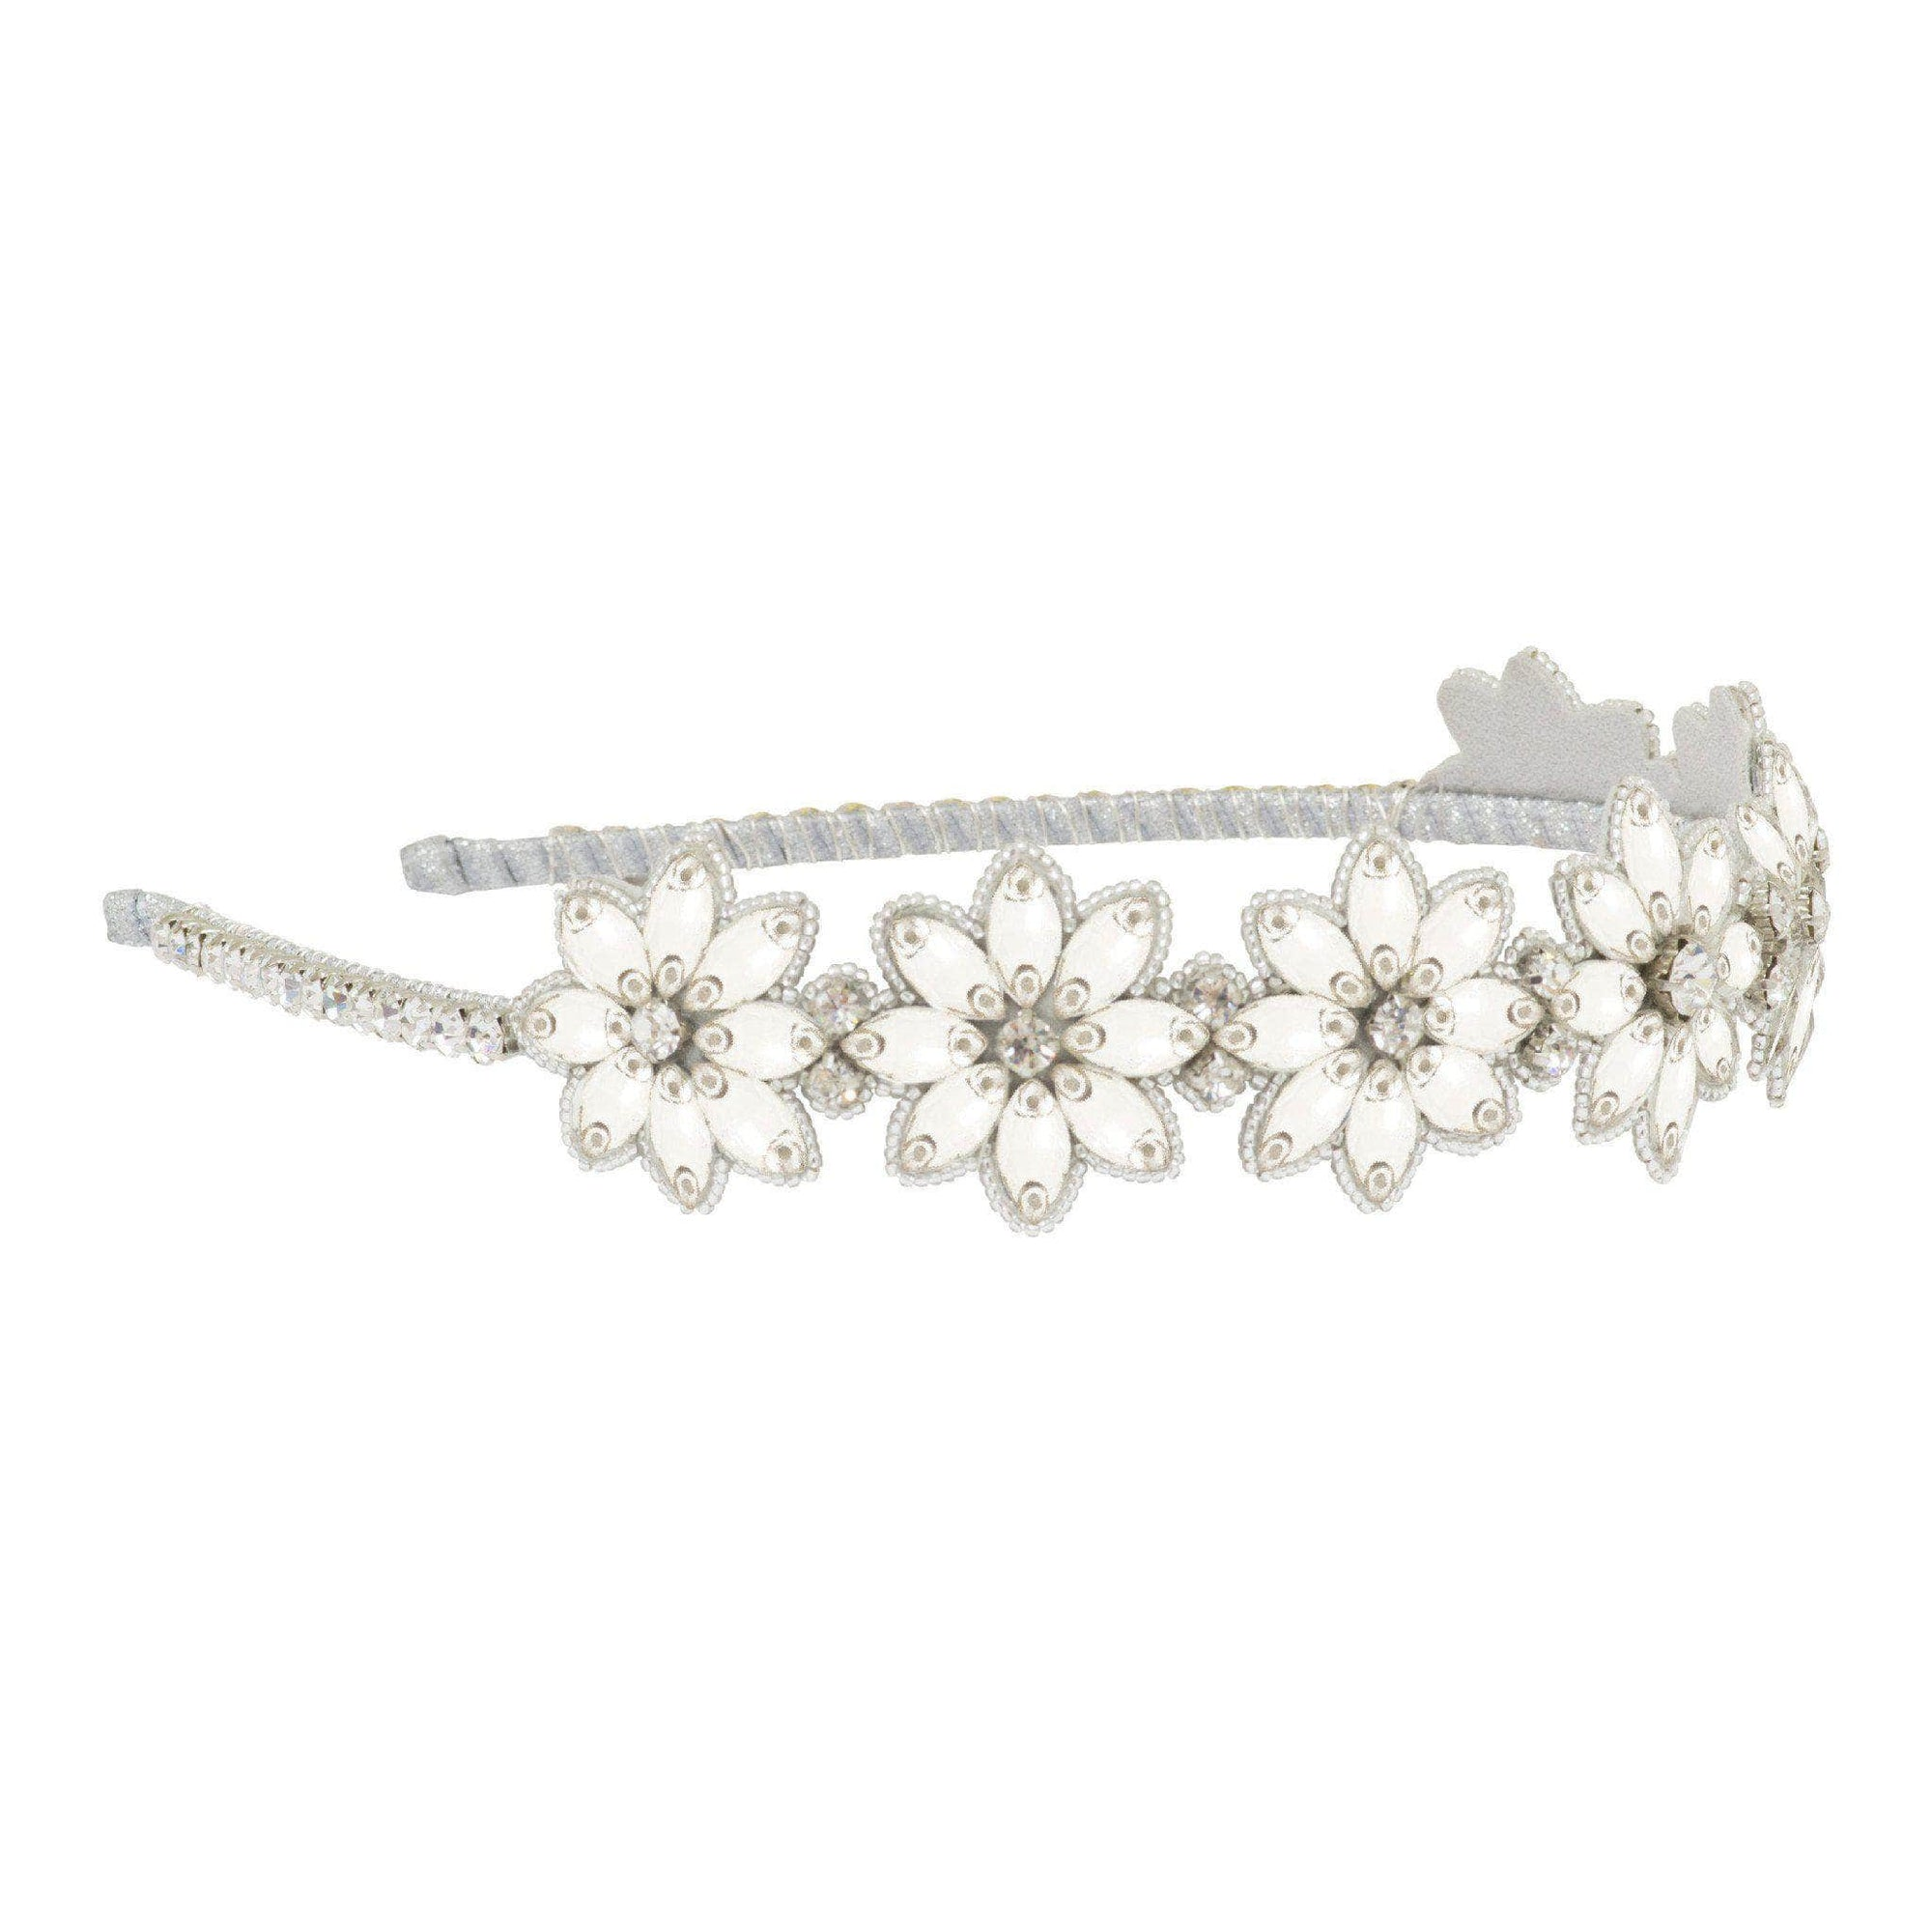 Wedding Headband Silver Statement crystal flower wedding headband silver- 'Darcy'